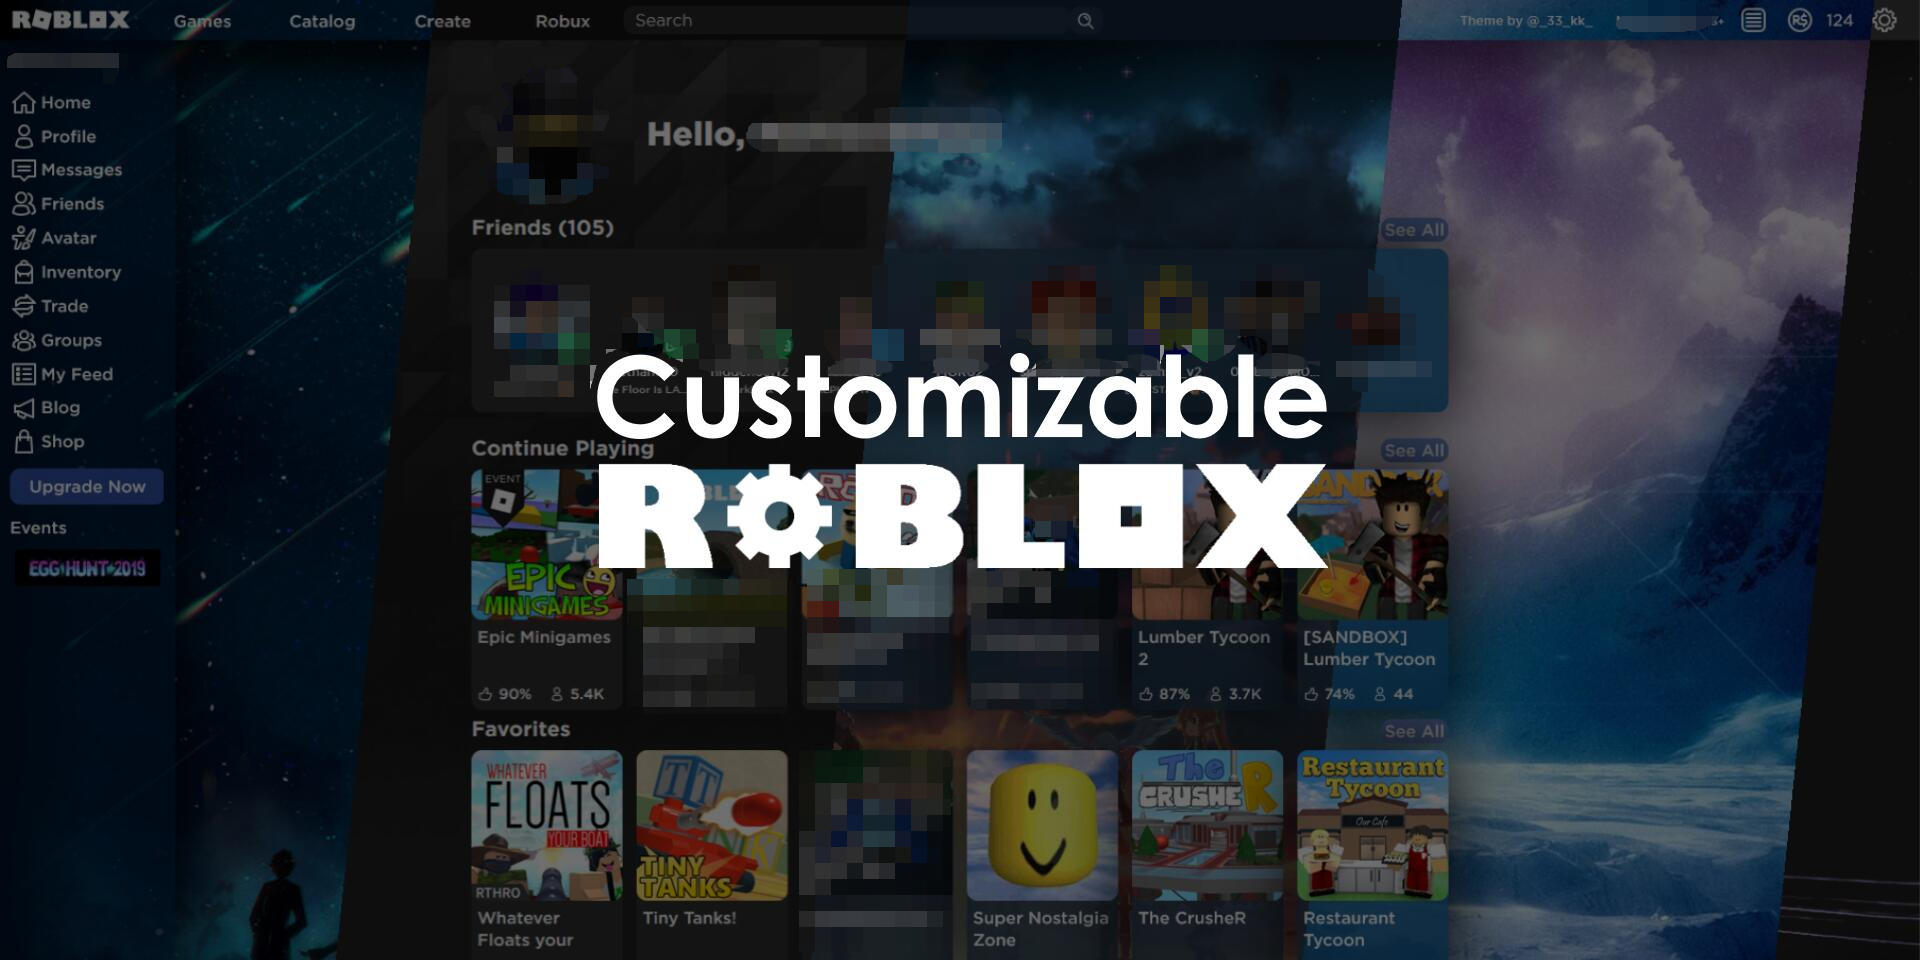 Customizable Roblox [READ DESCRIPTION] | Userstyles org